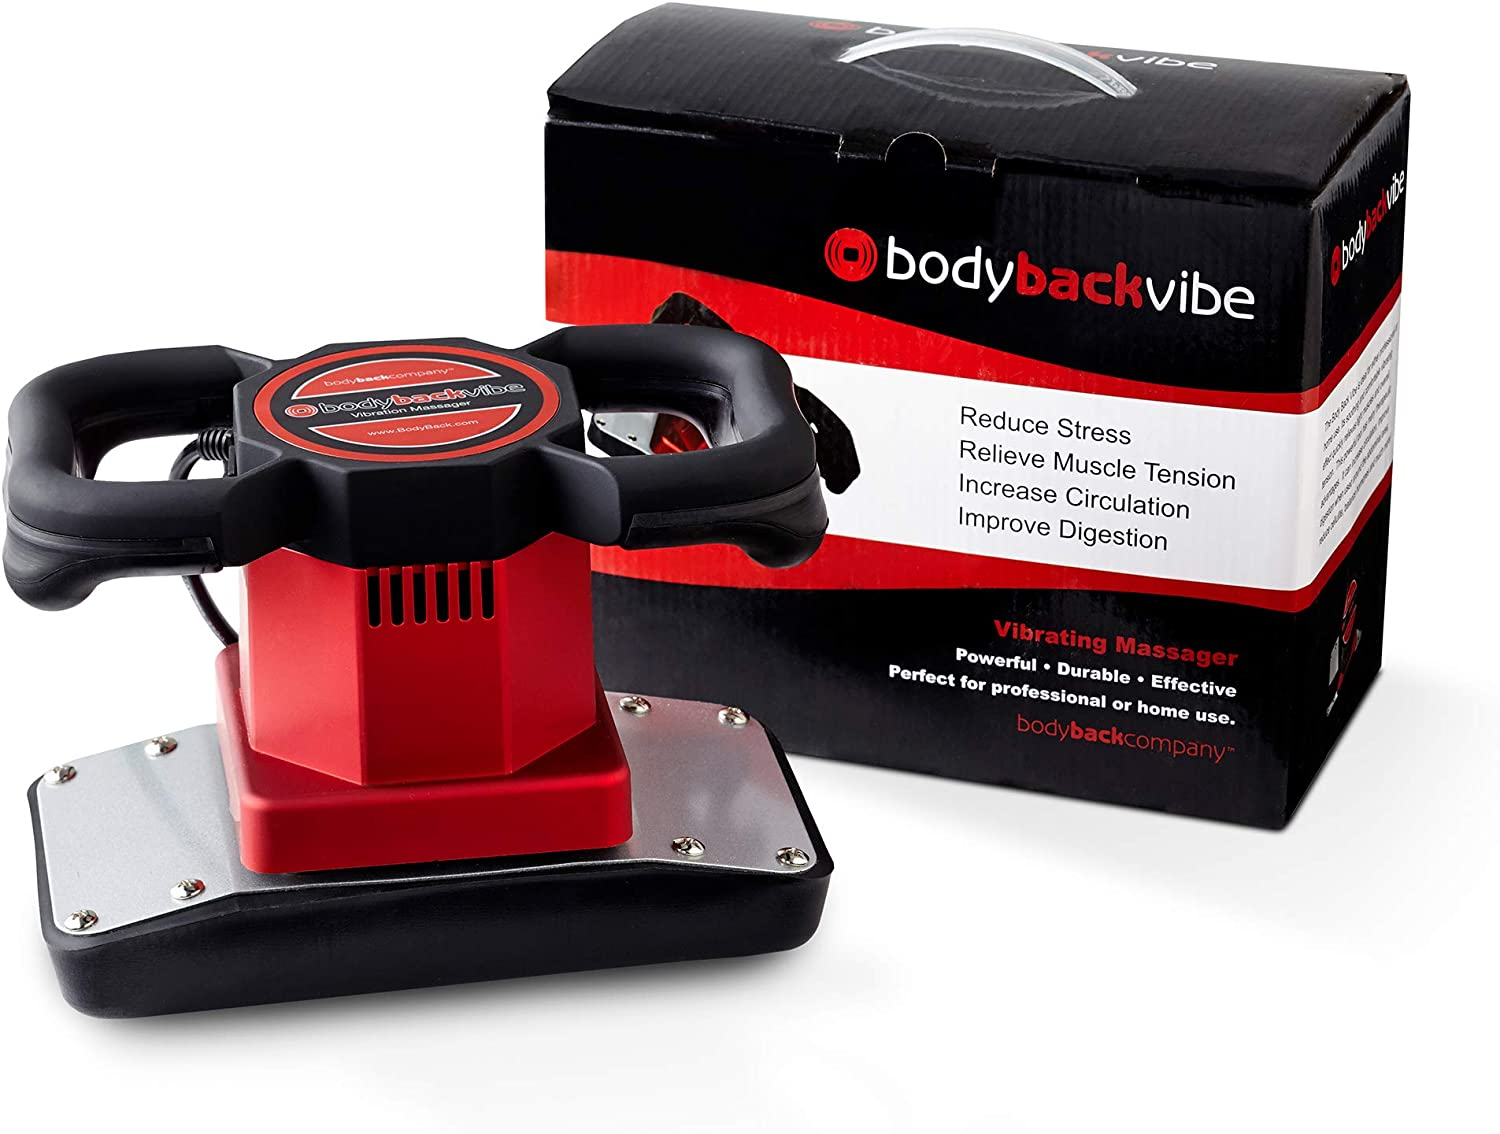 Body Back Vibe Professional Electric Massager, Back Massager Handheld, Back Pain Relief